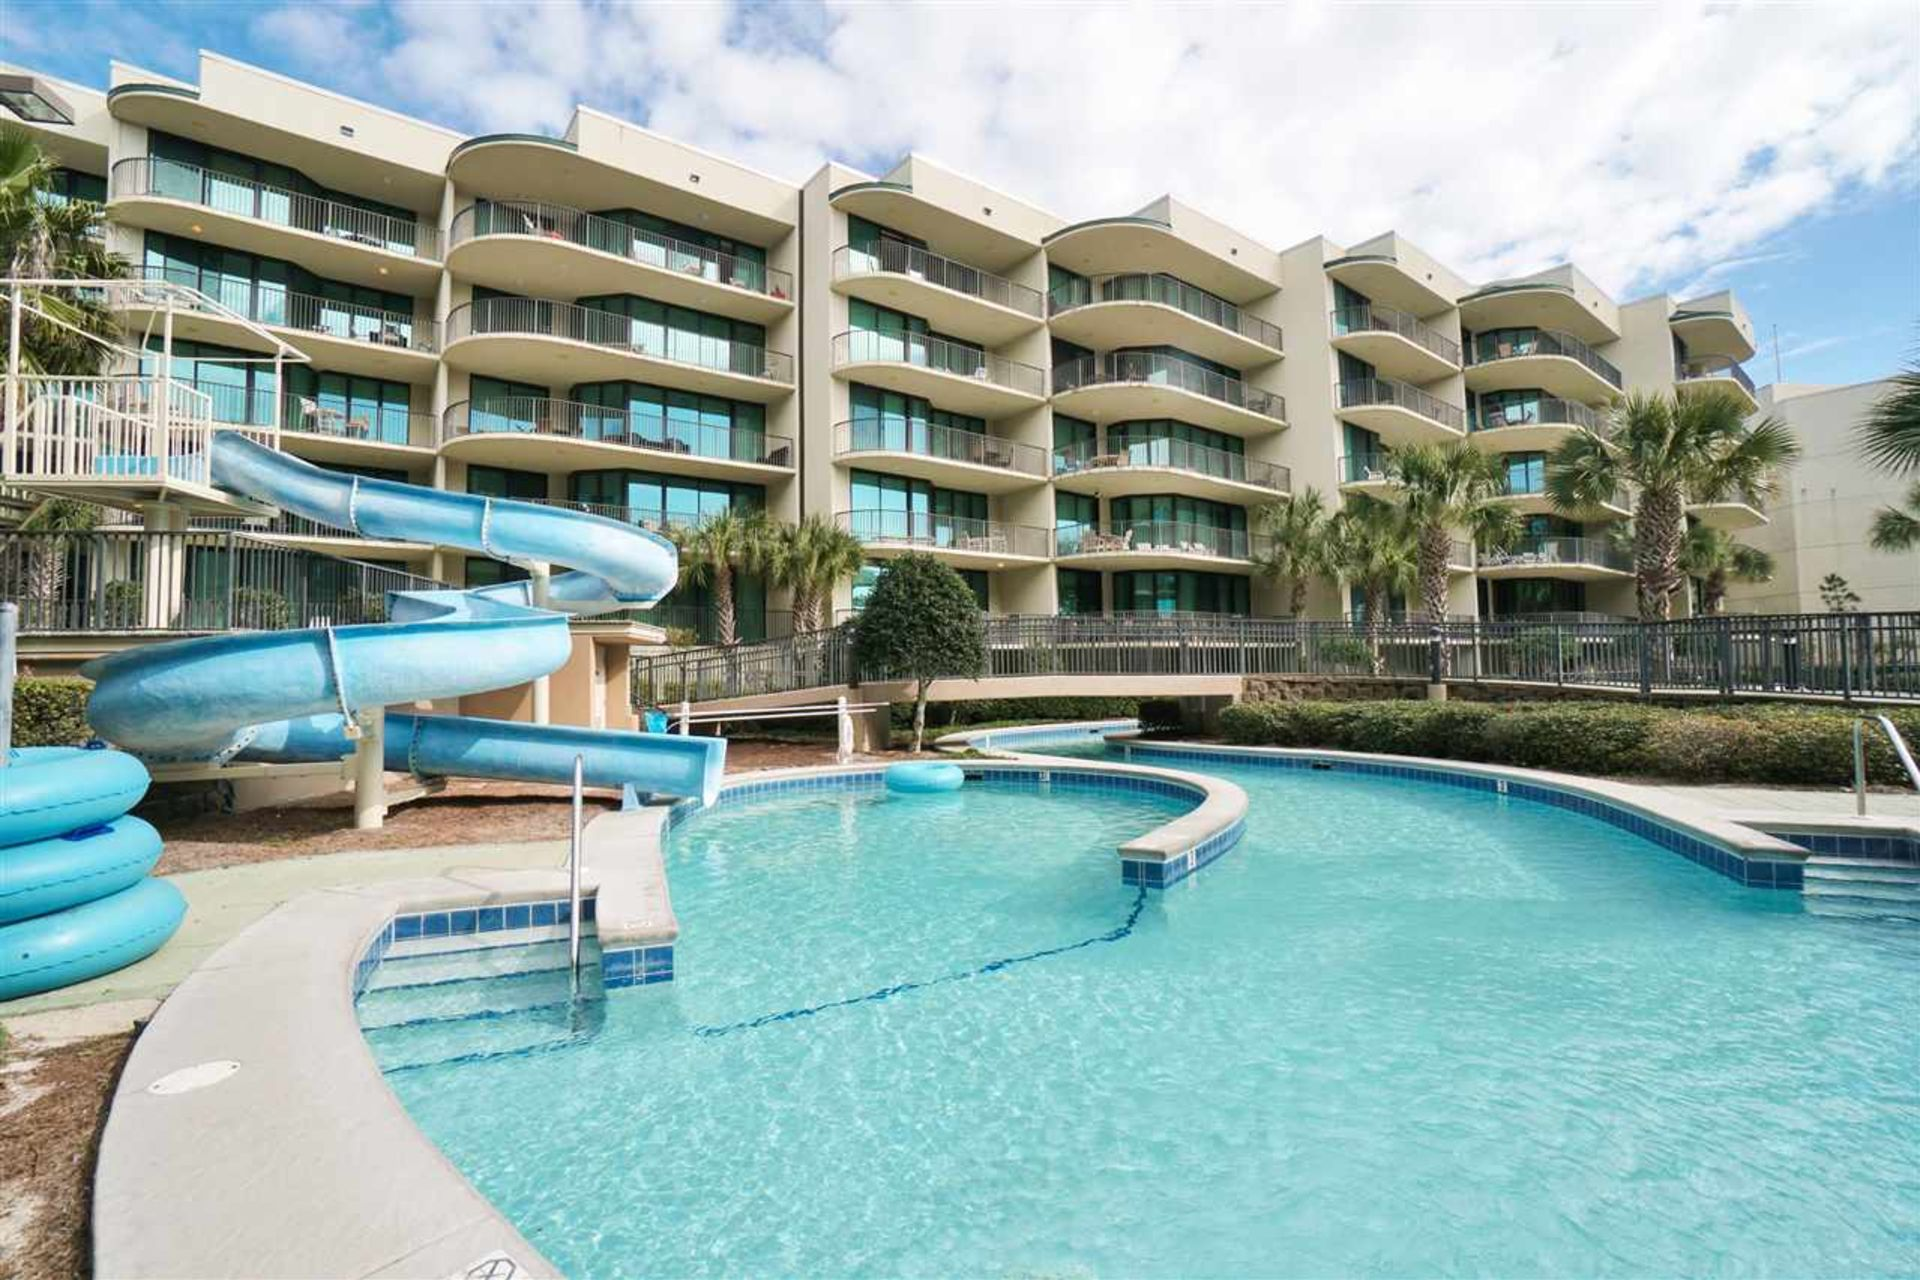 Orange Beach Condos from $500,000 to $600,000